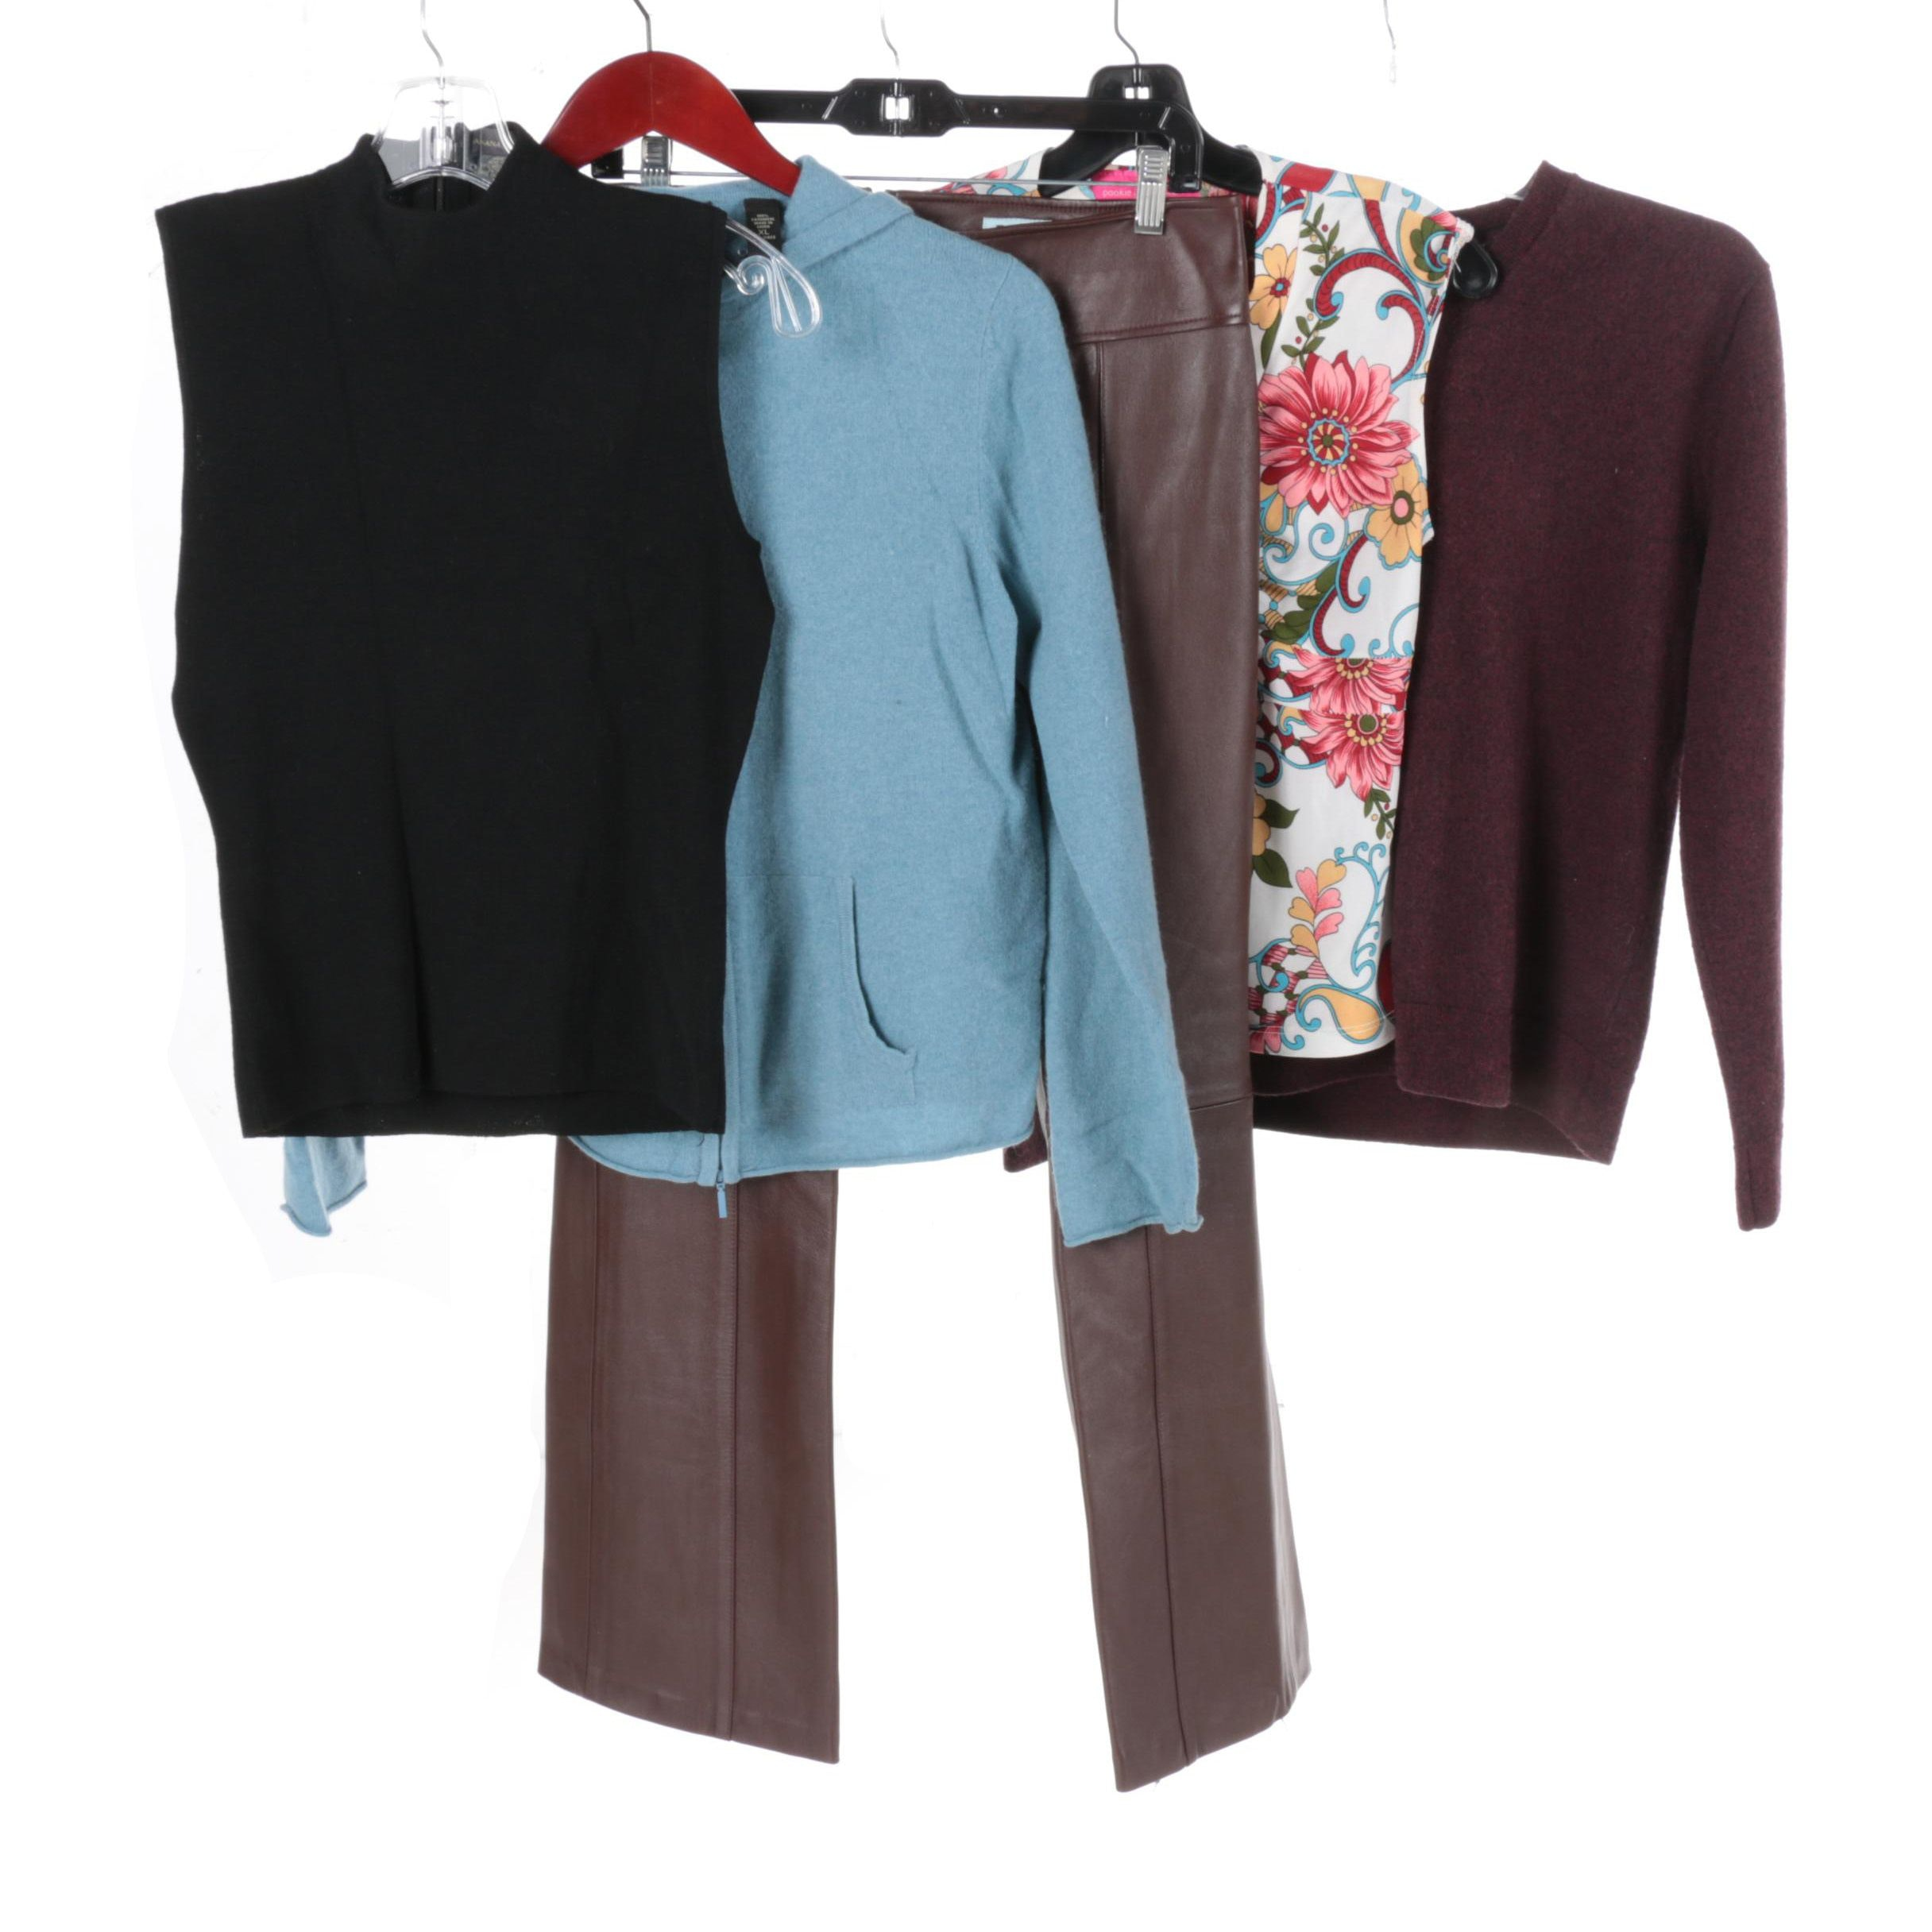 Women's Clothing Including Lord & Taylor